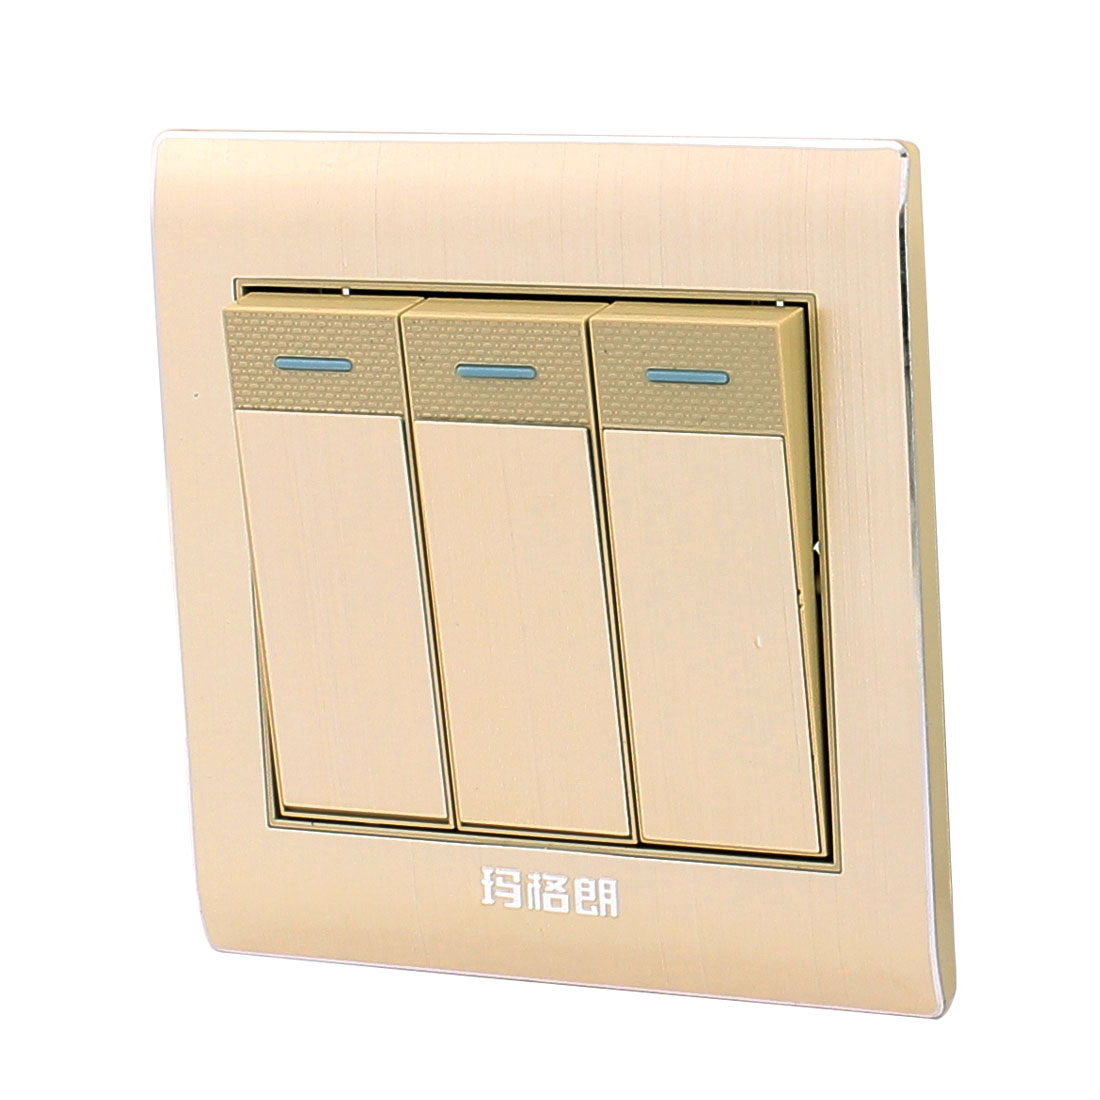 AC 250V 10A 3 Gang 2 Way On/Off Plastic Golden Rectangle Design Wall Light Switch